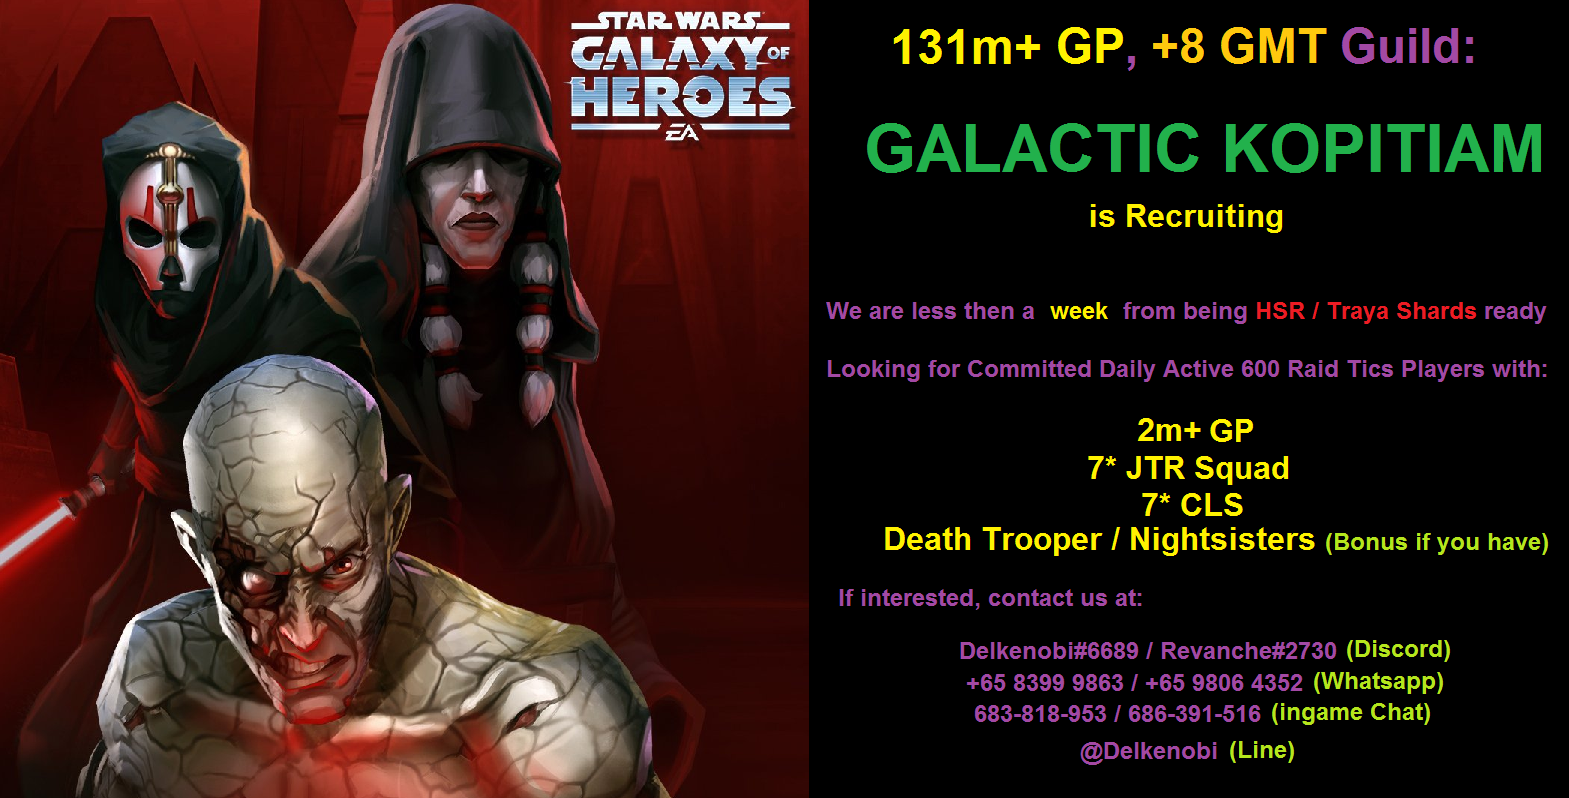 131m+GP, GMT +8 Timezone, Independent Stand-alone Guild Looking for